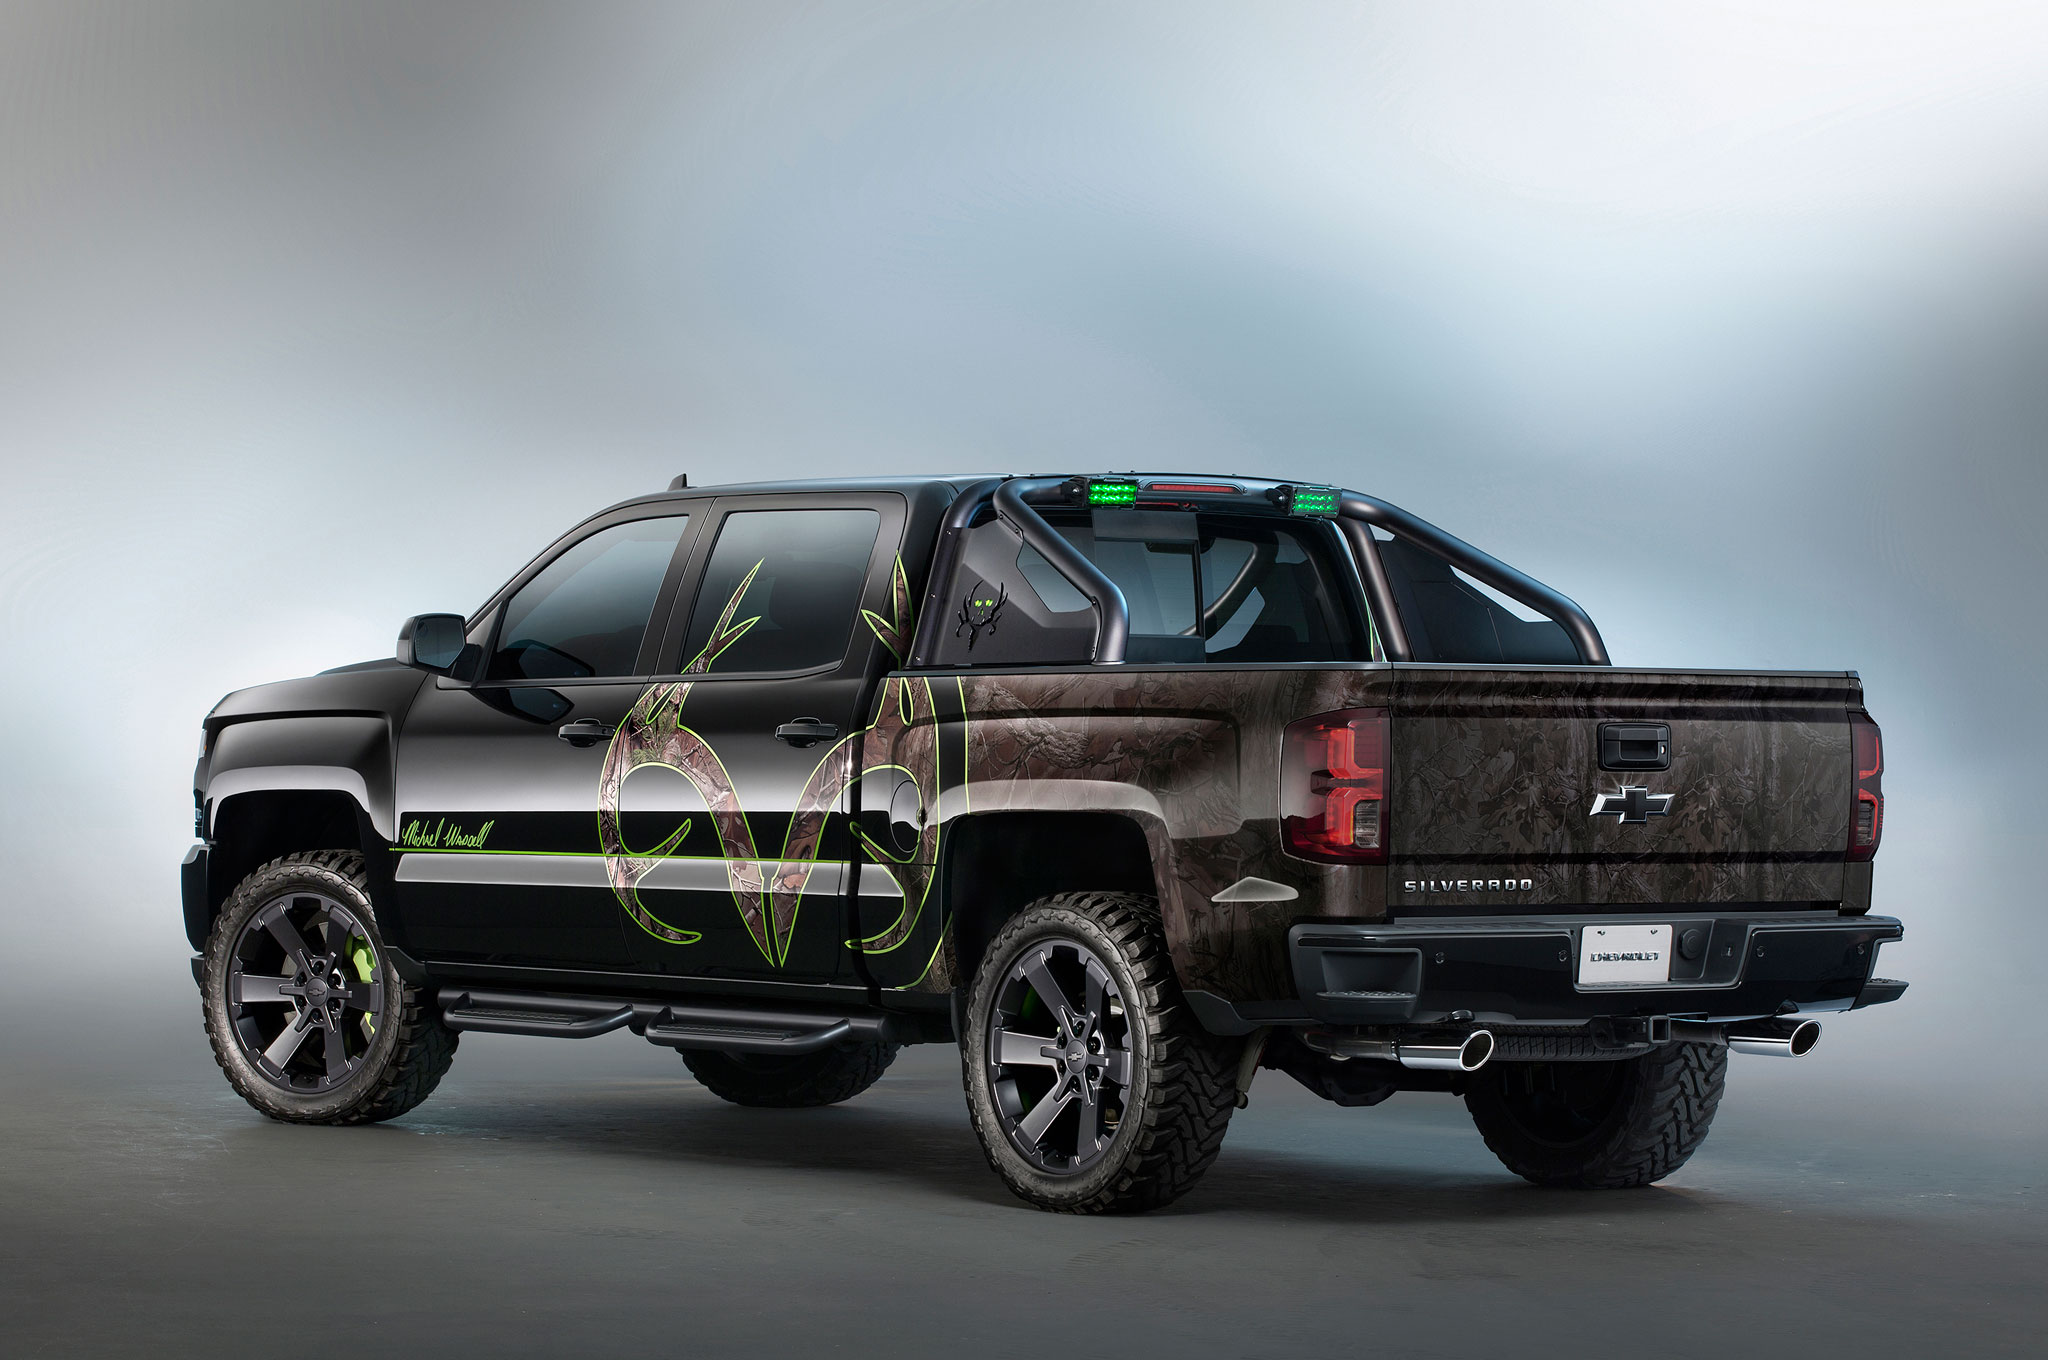 chevrolet silverado kid rock special ops concepts unveiled at sema. Black Bedroom Furniture Sets. Home Design Ideas